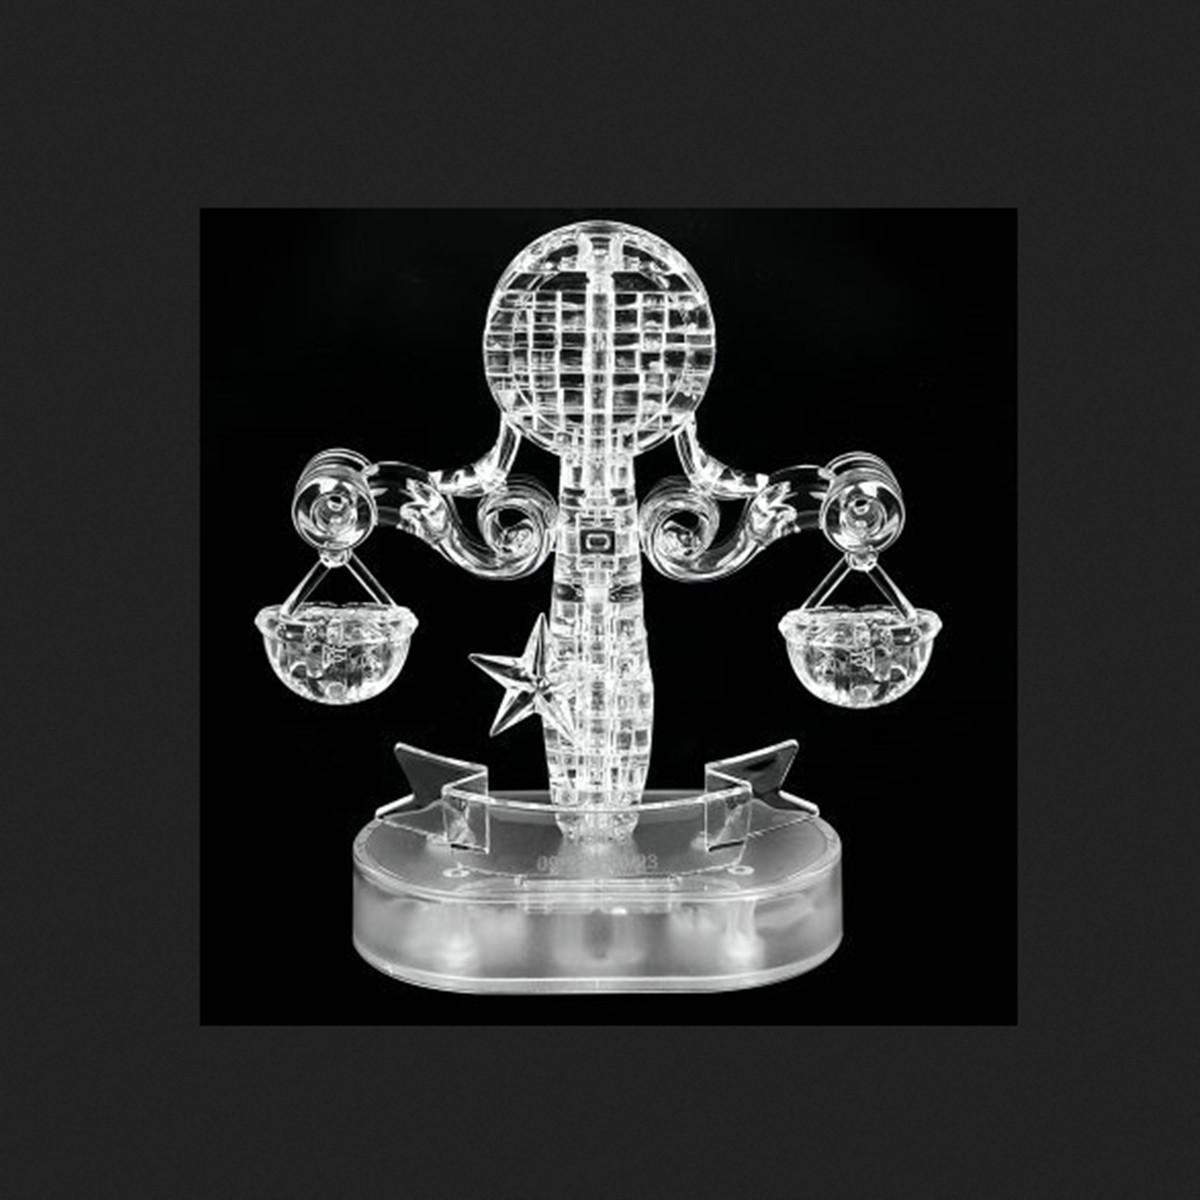 Flash Led Crystal Constellations Jigsaws Puzzles